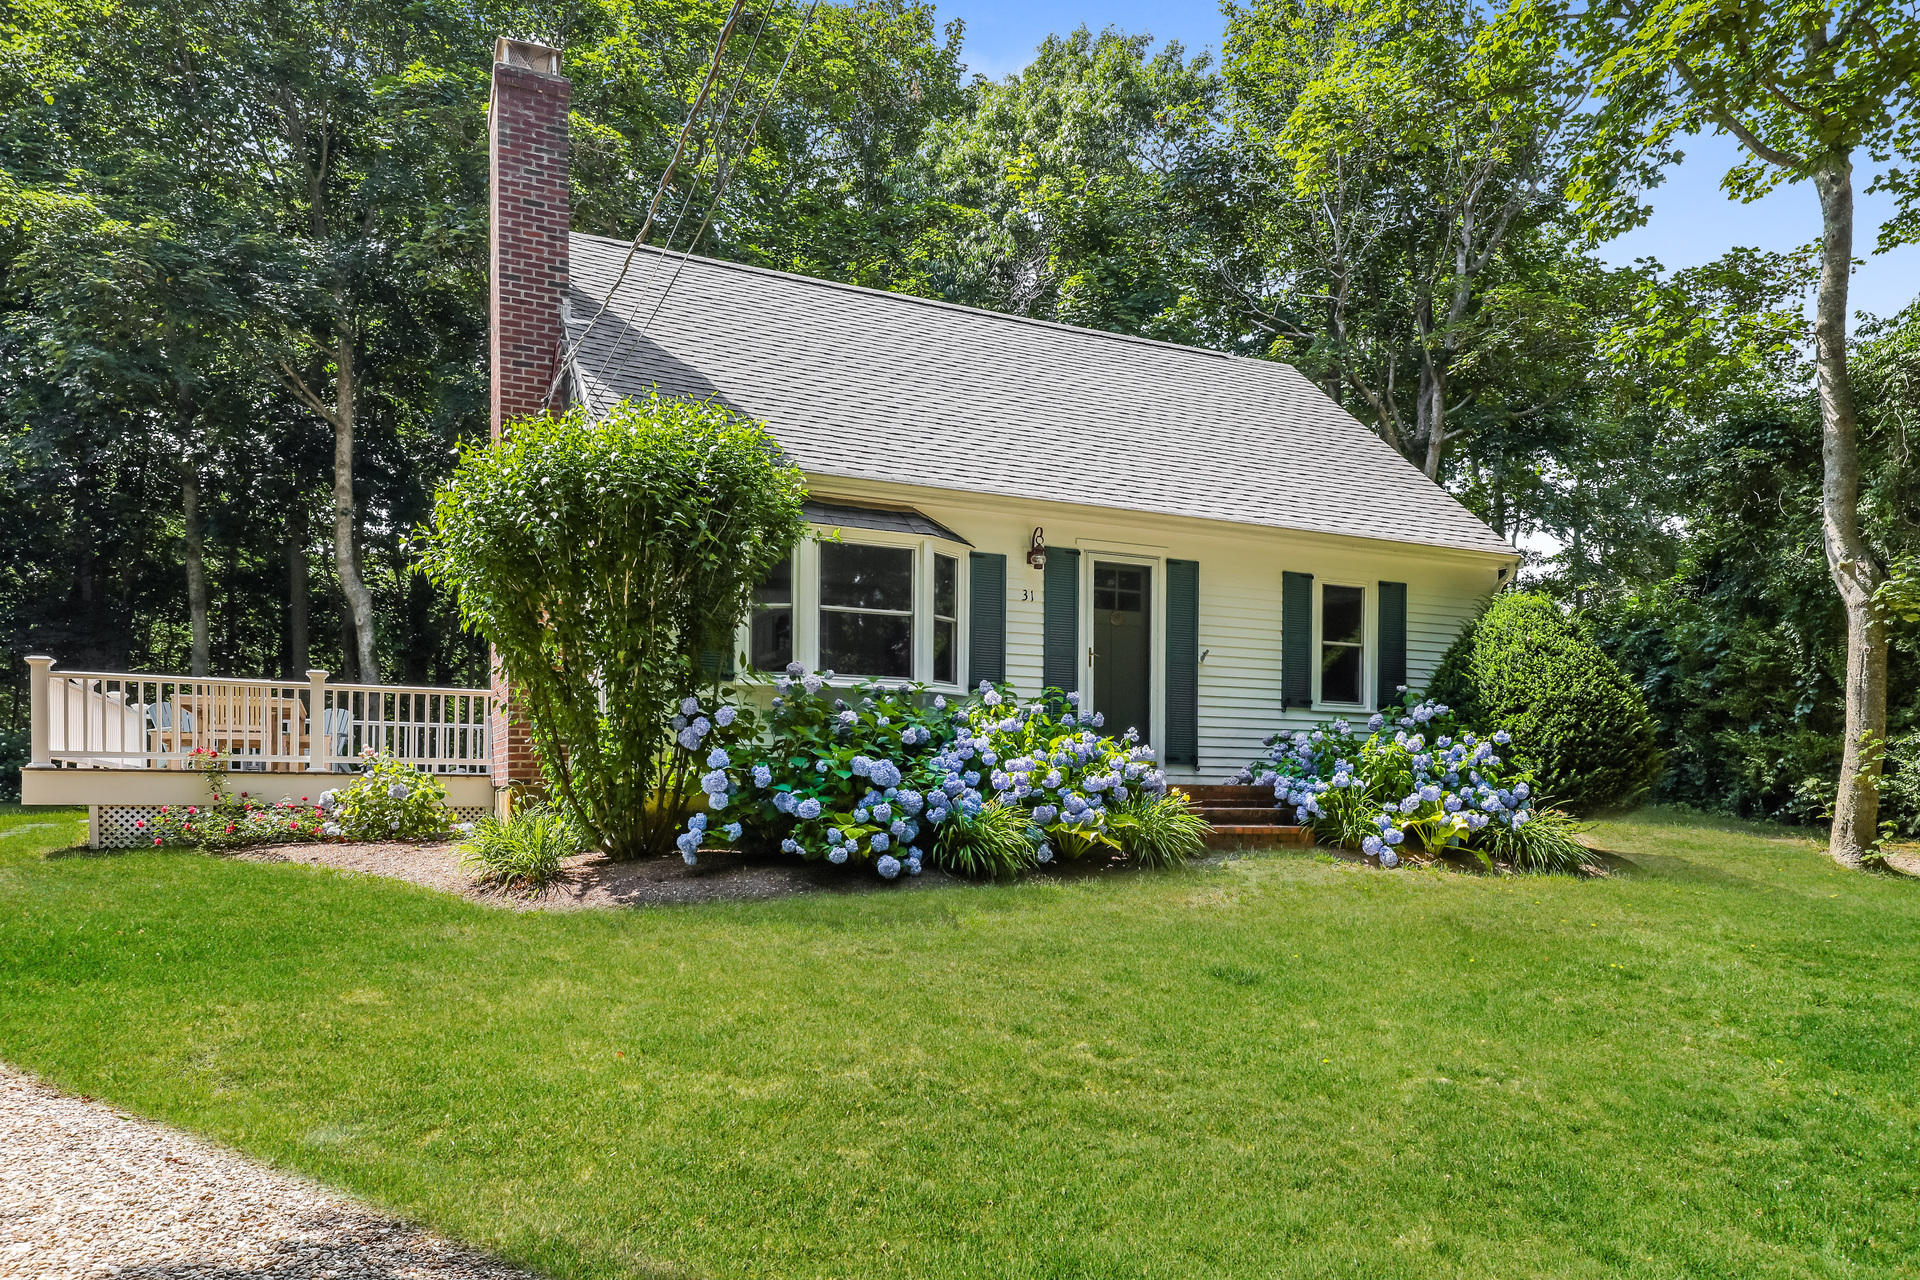 31 Childs Homestead Road, Orleans MA, 02653 sales details